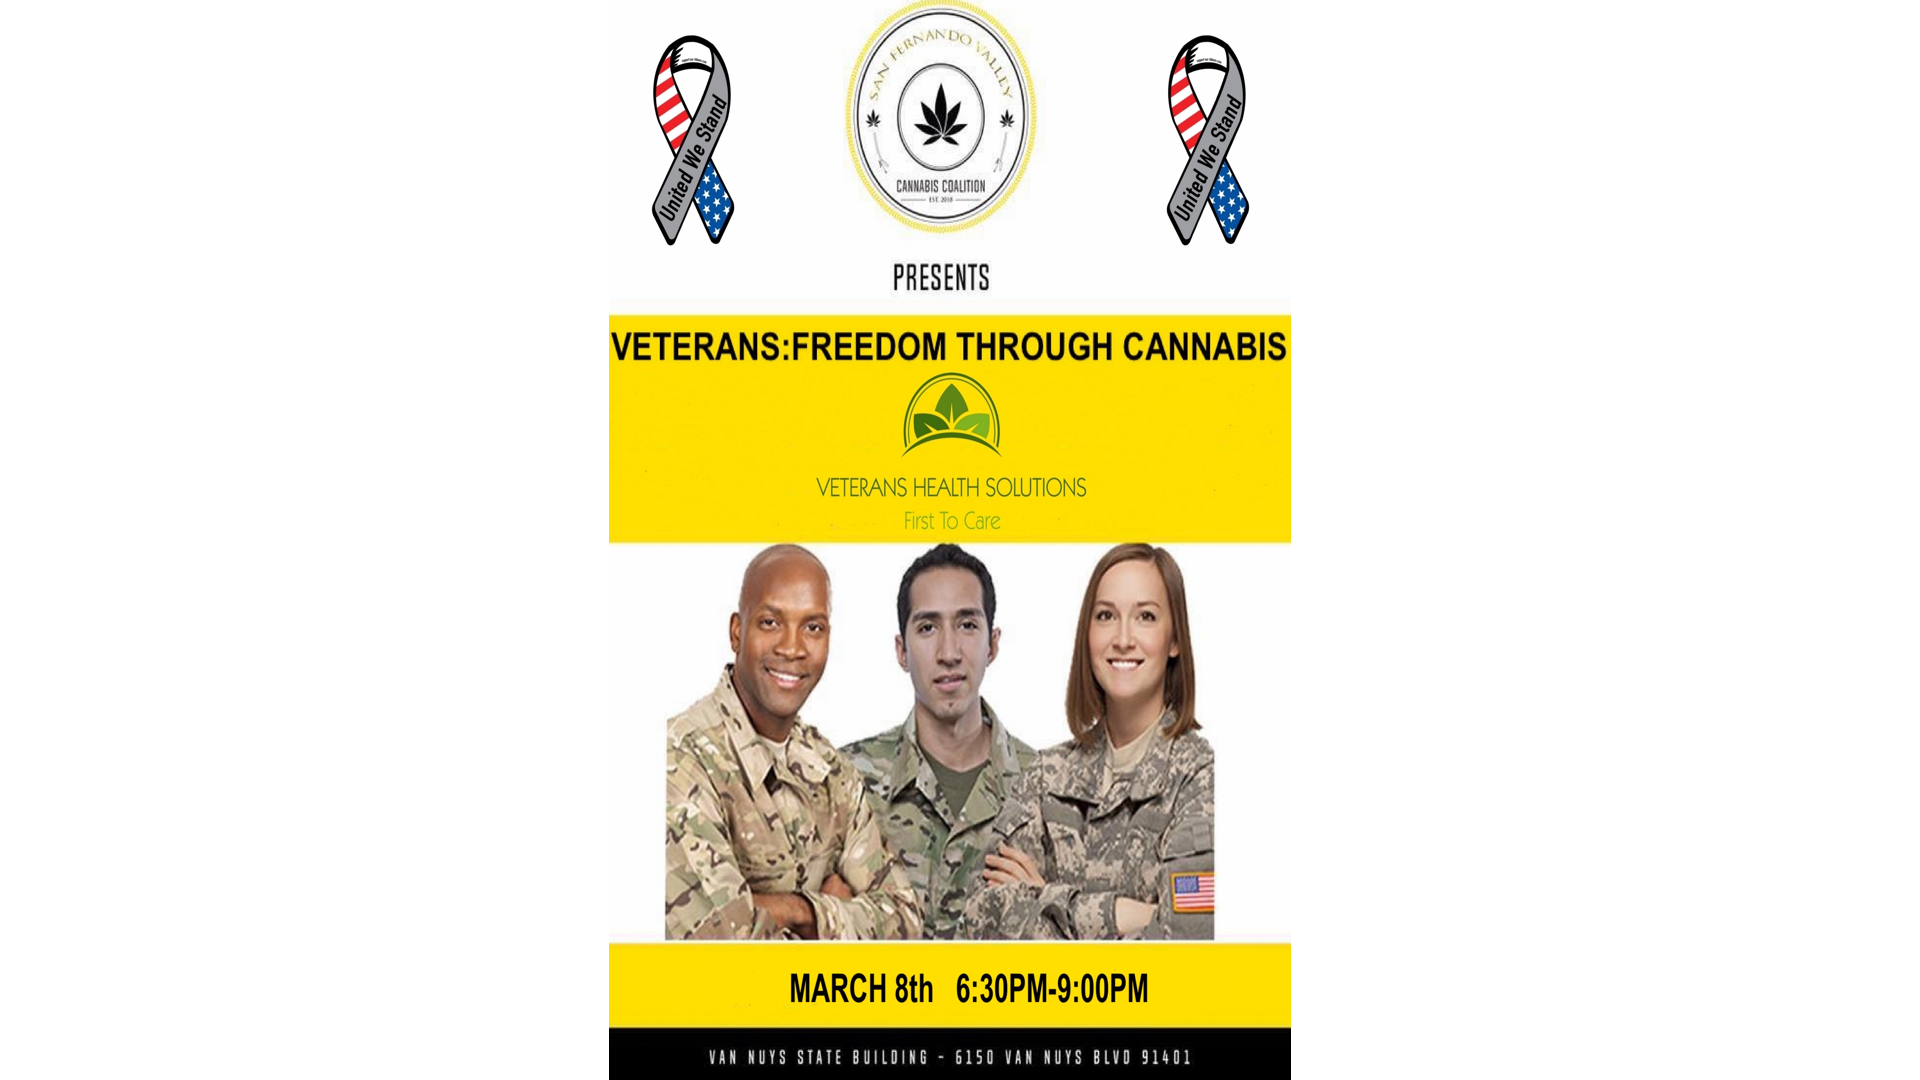 VETERANS: FREEDOM THROUGH CANNABIS/Moderated by Veterans Health Solutions